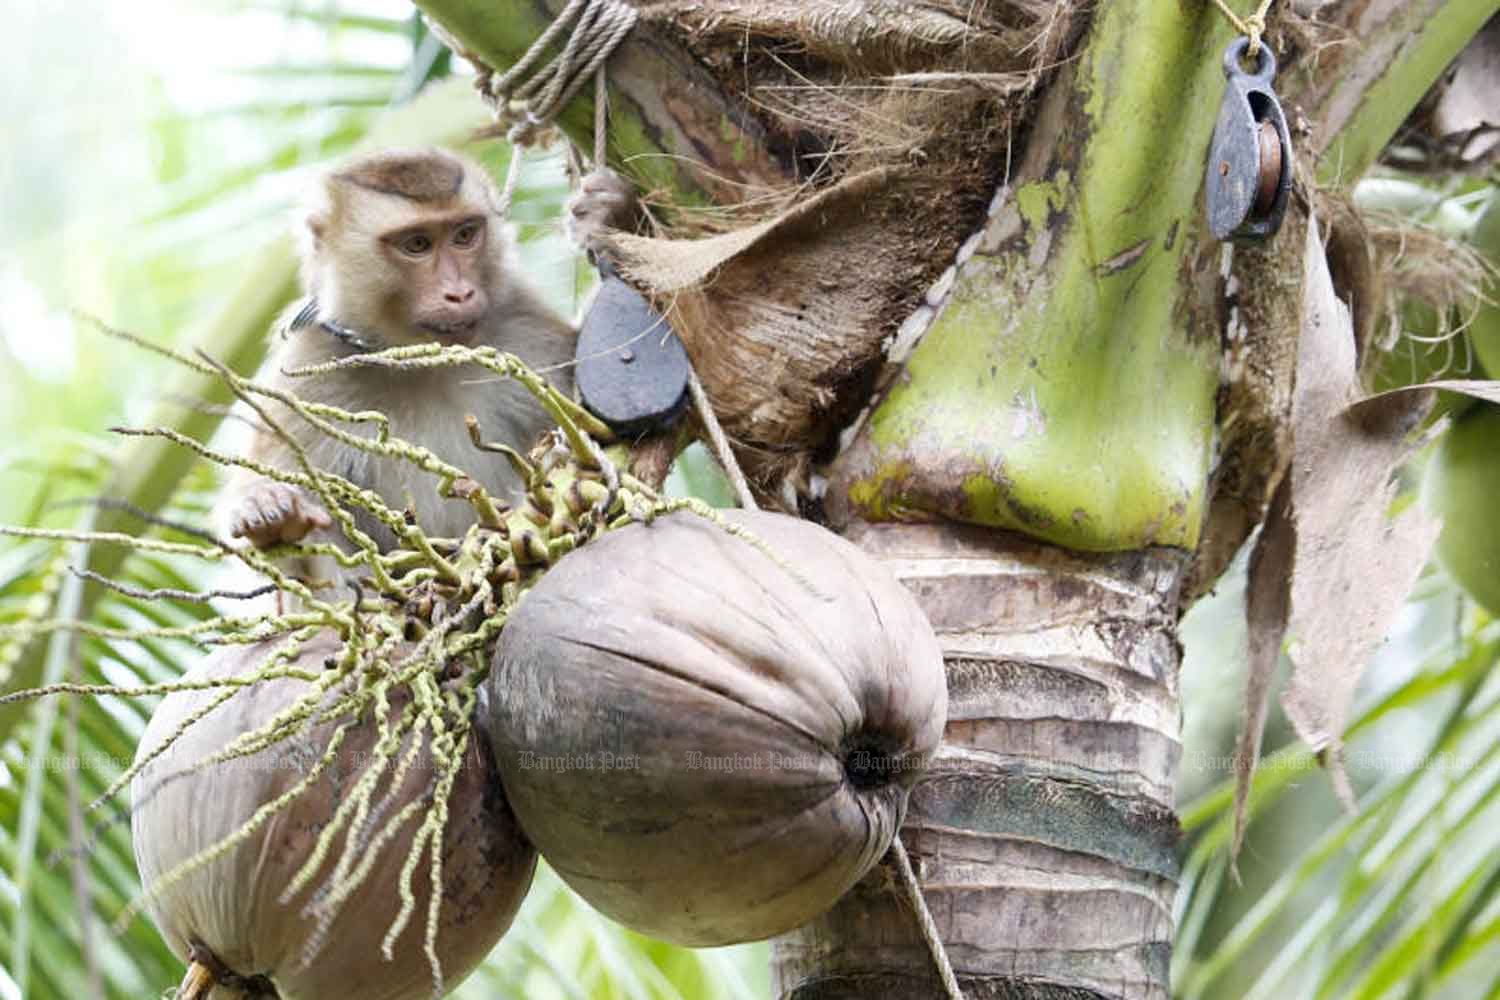 A monkey is trained to pick coconuts in Surat Thani province. (Photo: Pattarapong Chatpattarasill)